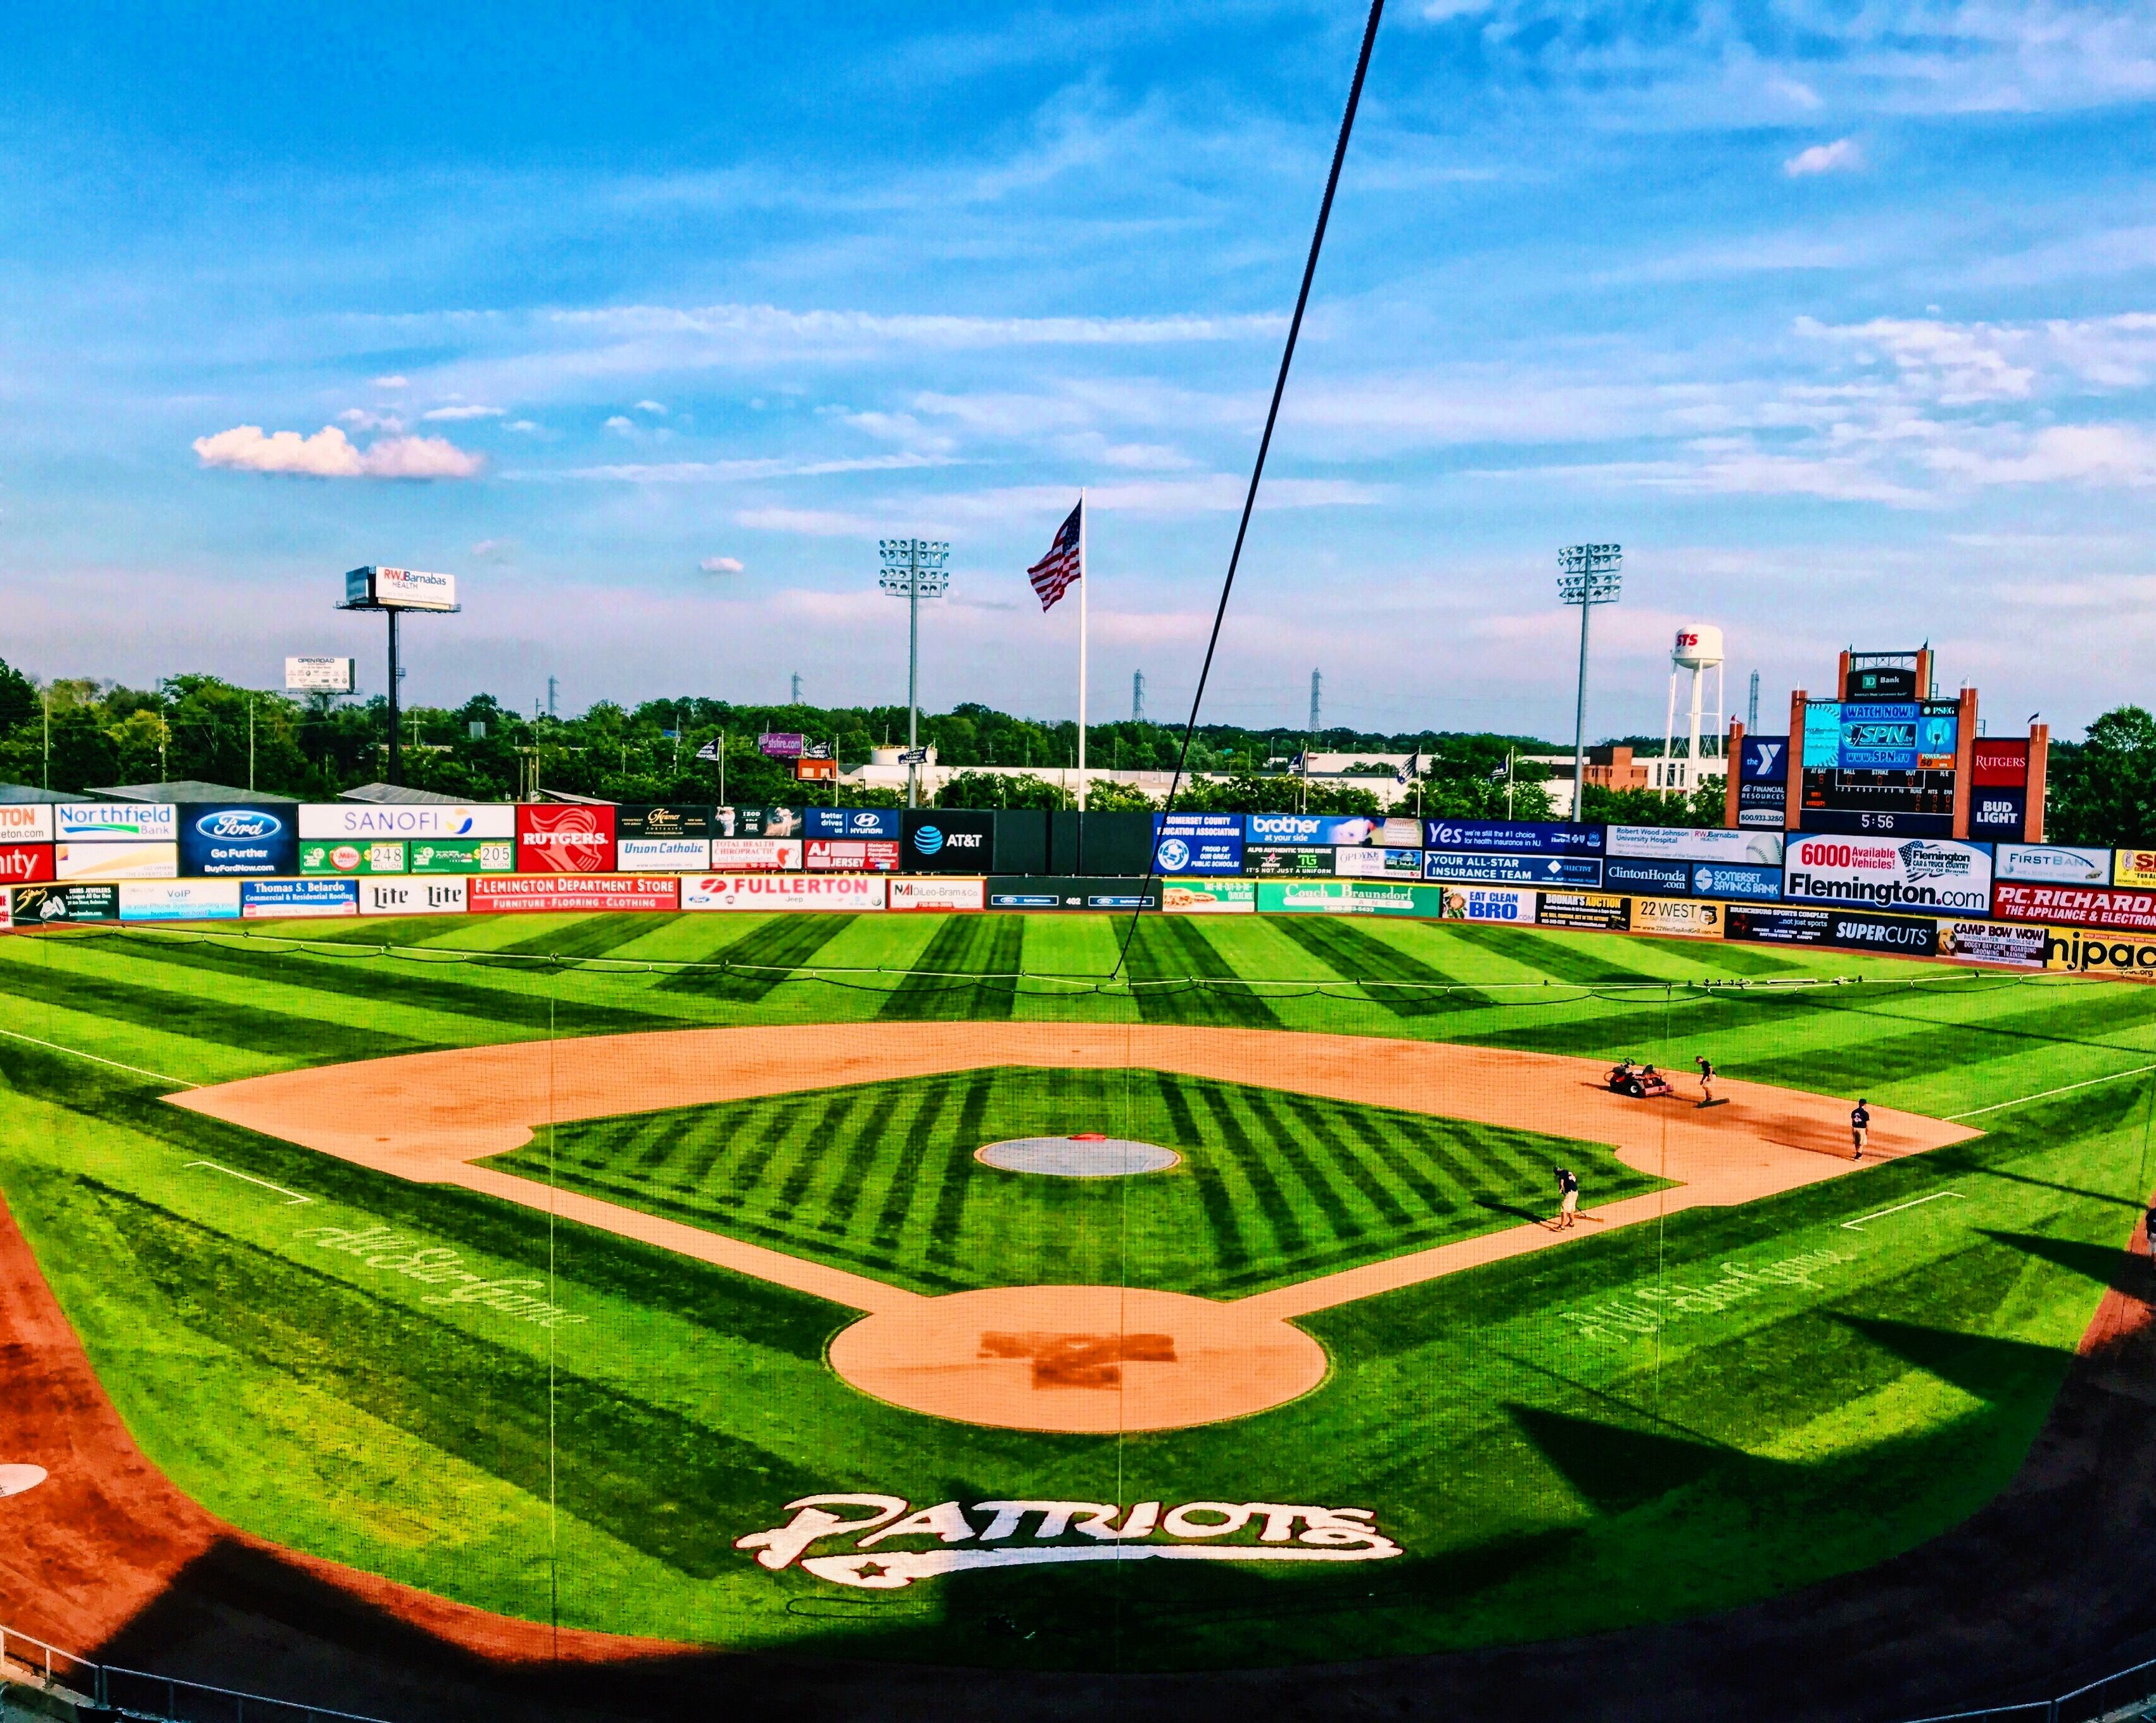 Picture Perfect Day For Baseball New Jersey The Incredibles Baseball